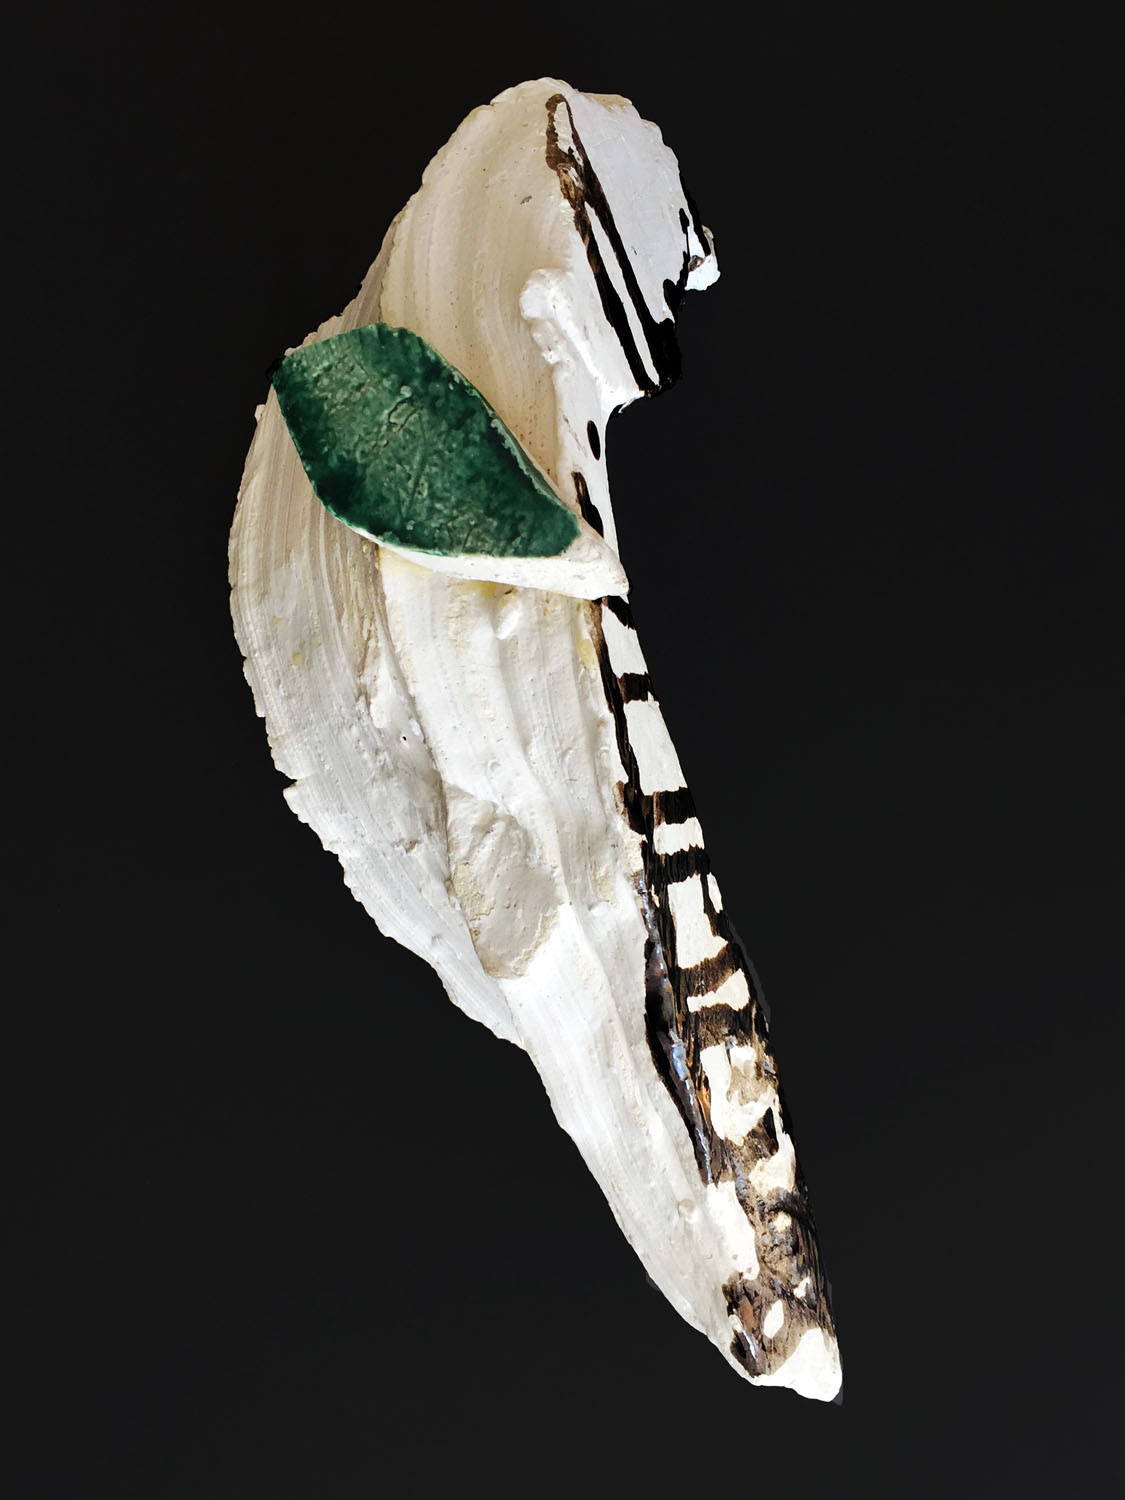 Jonathan Livingston Seagull has a Different Meaning Every Time , 2010, glazed ceramic, 5 x 5.5 x 11.5 inches